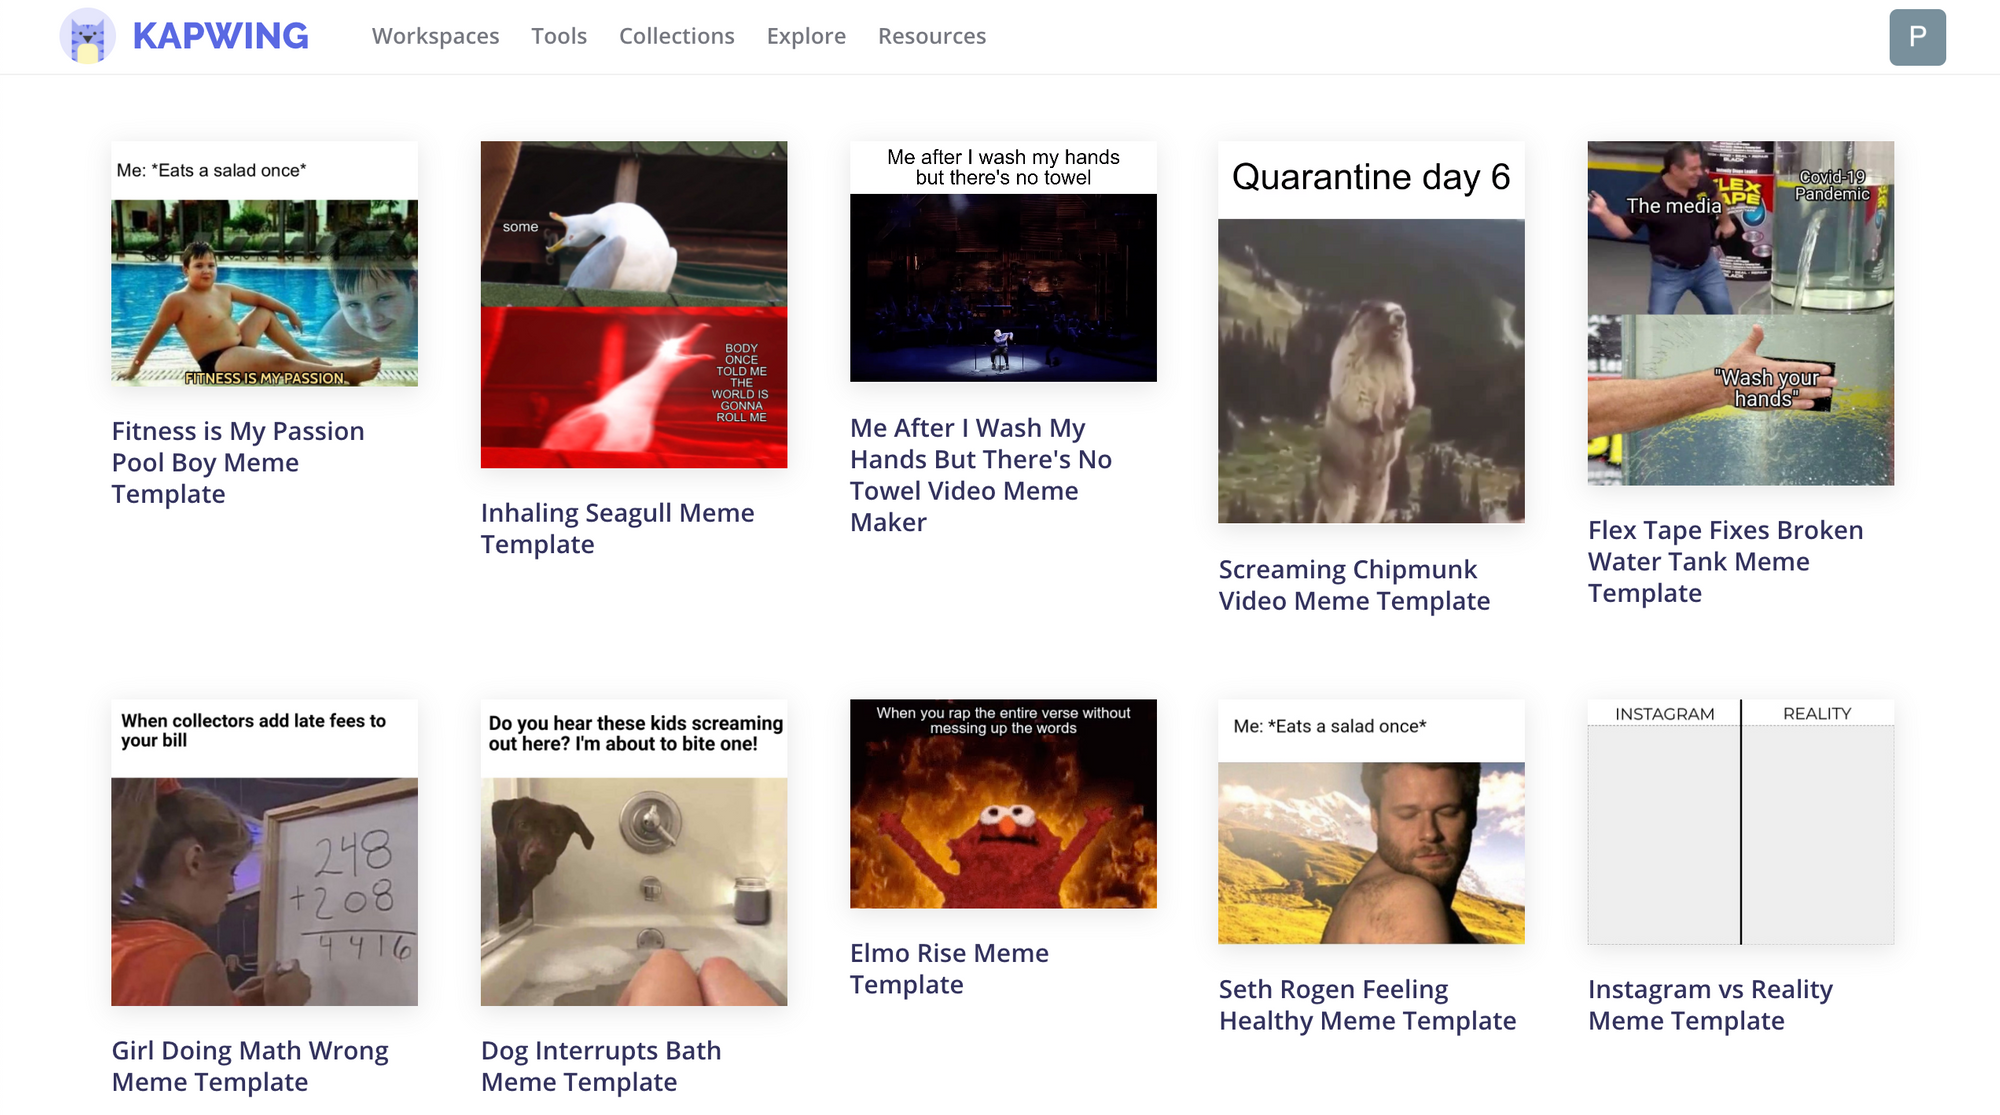 A screenshot of the Kapwing Meme templates page.